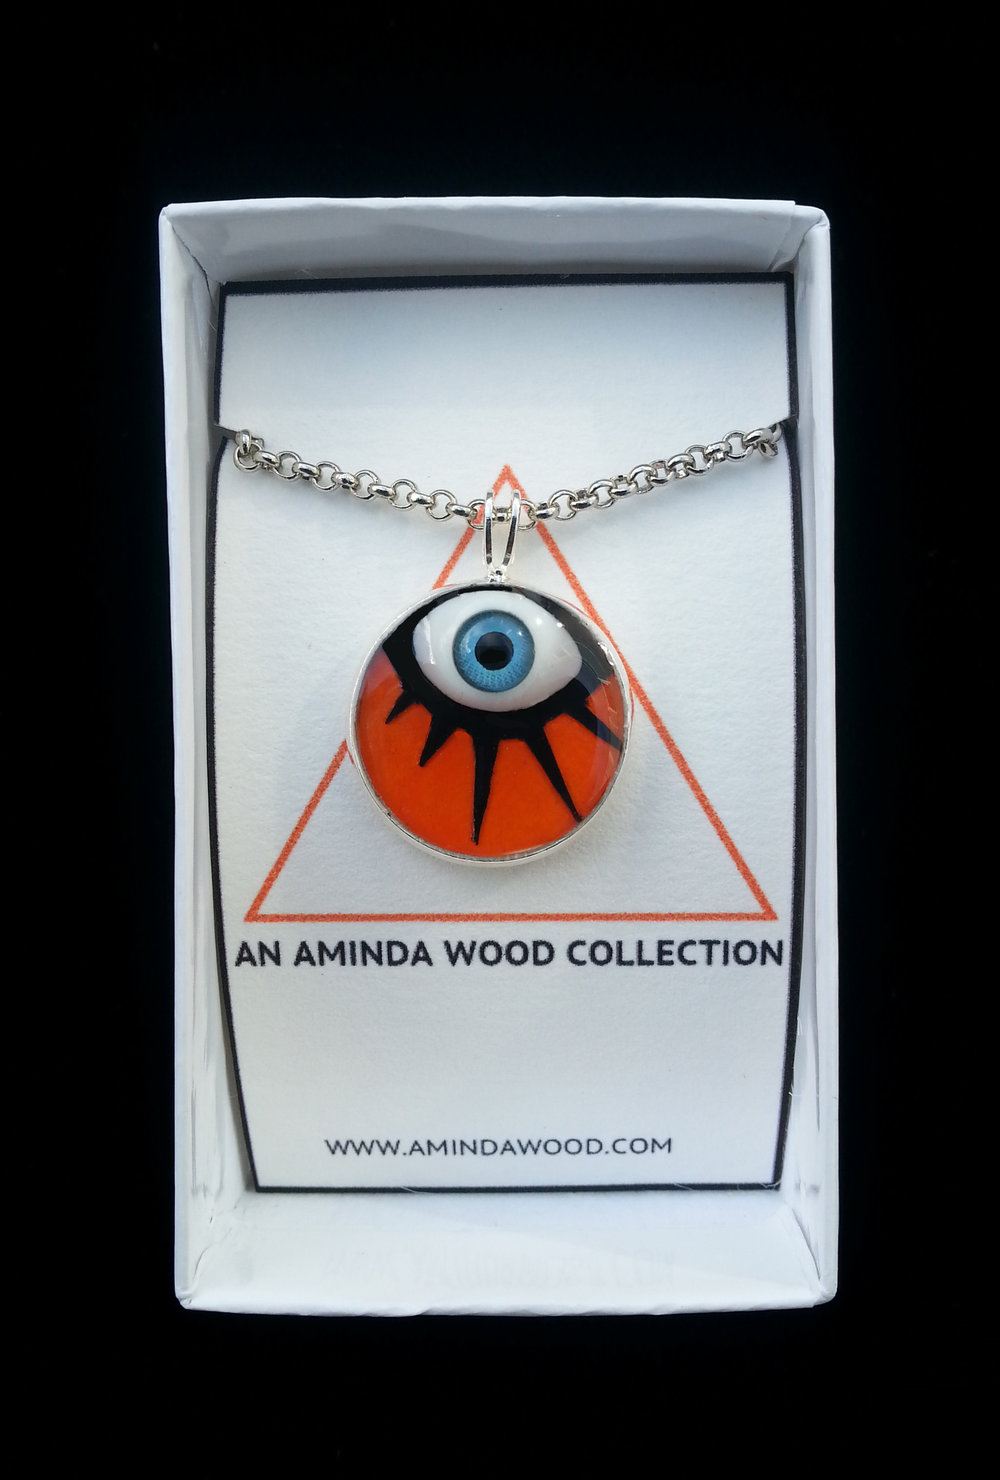 An Aminda Wood Collection